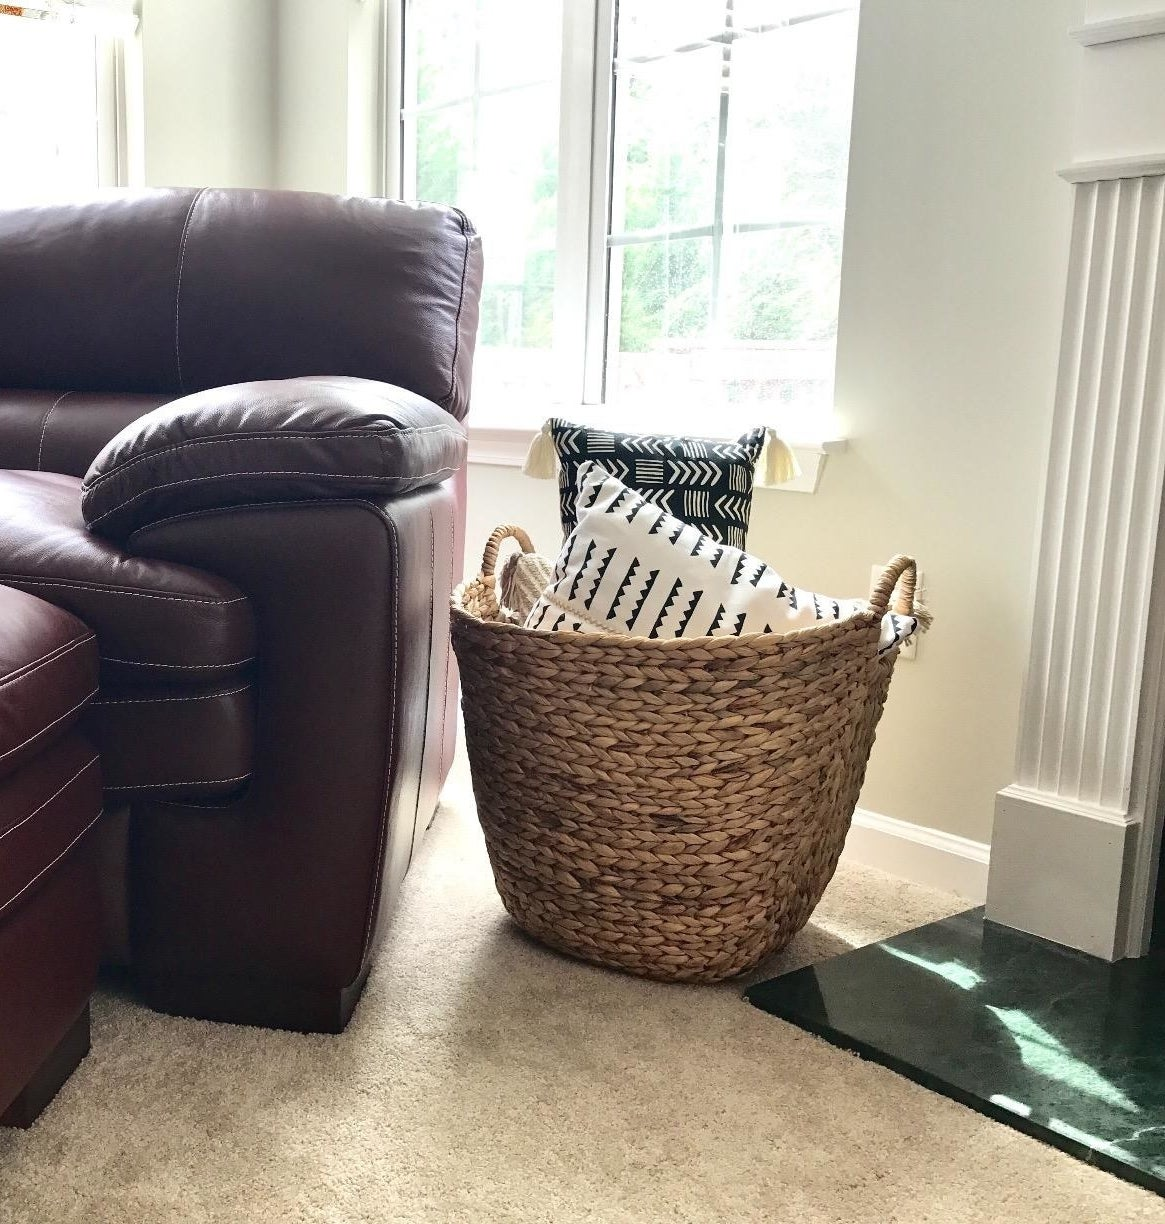 reviewer pic of the woven basket in light tan next to a chair with pillows inside of it